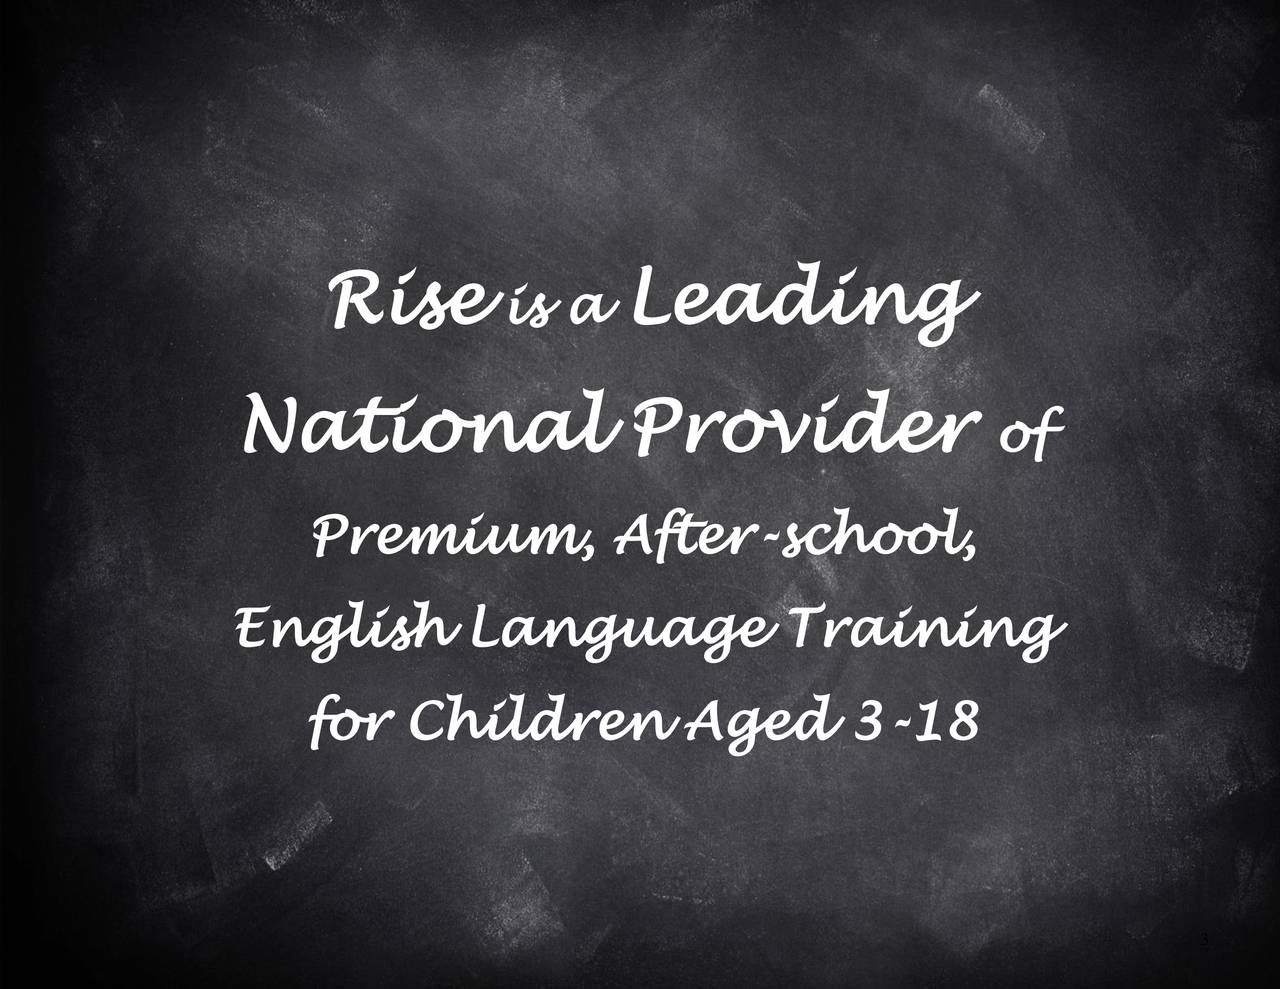 National Provider of Premium, After-school, English Language Training for Children Aged 3-18 3